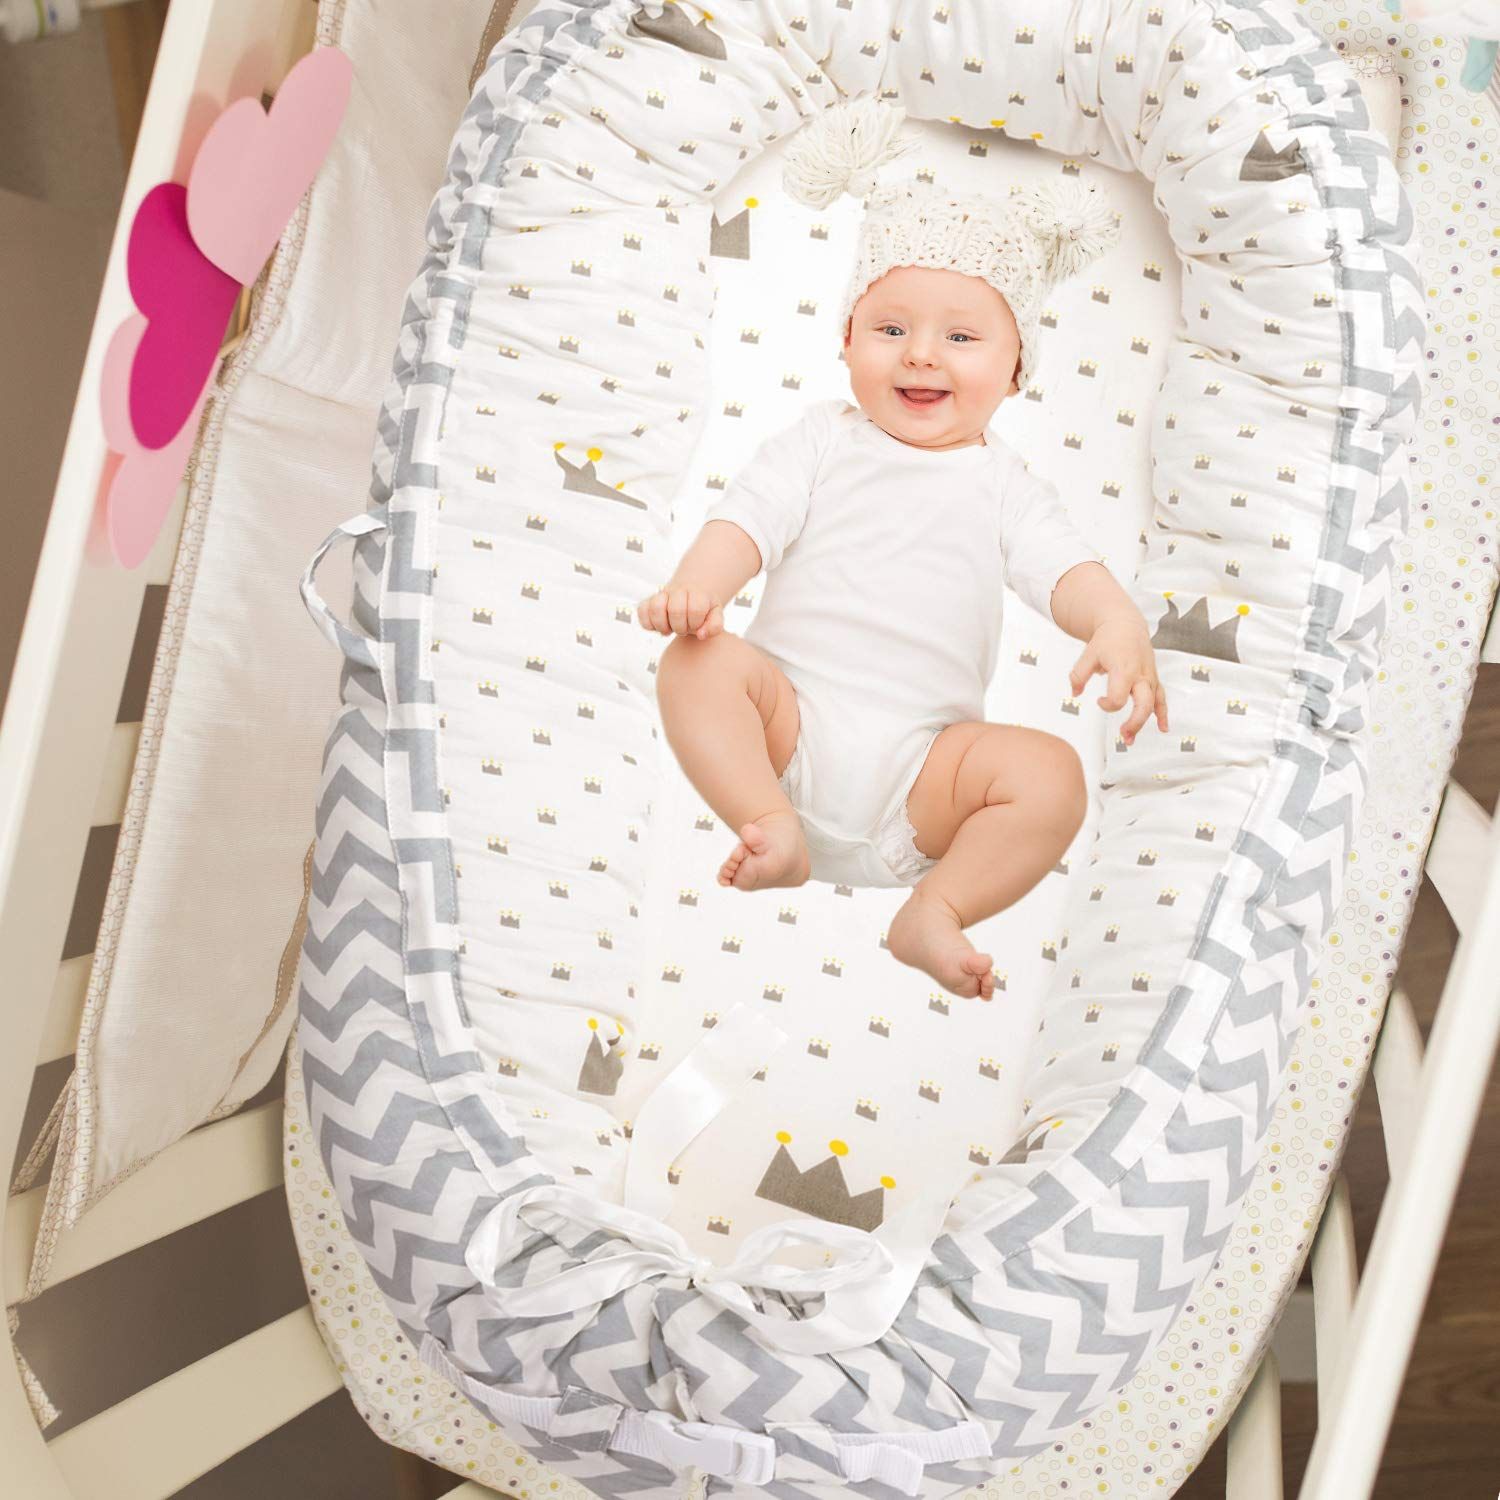 Perfect for Co-Sleeping /… Baby Lounger Moose Portable Super Soft Organic Cotton and Breathable Newborn Lounger Baby Nest